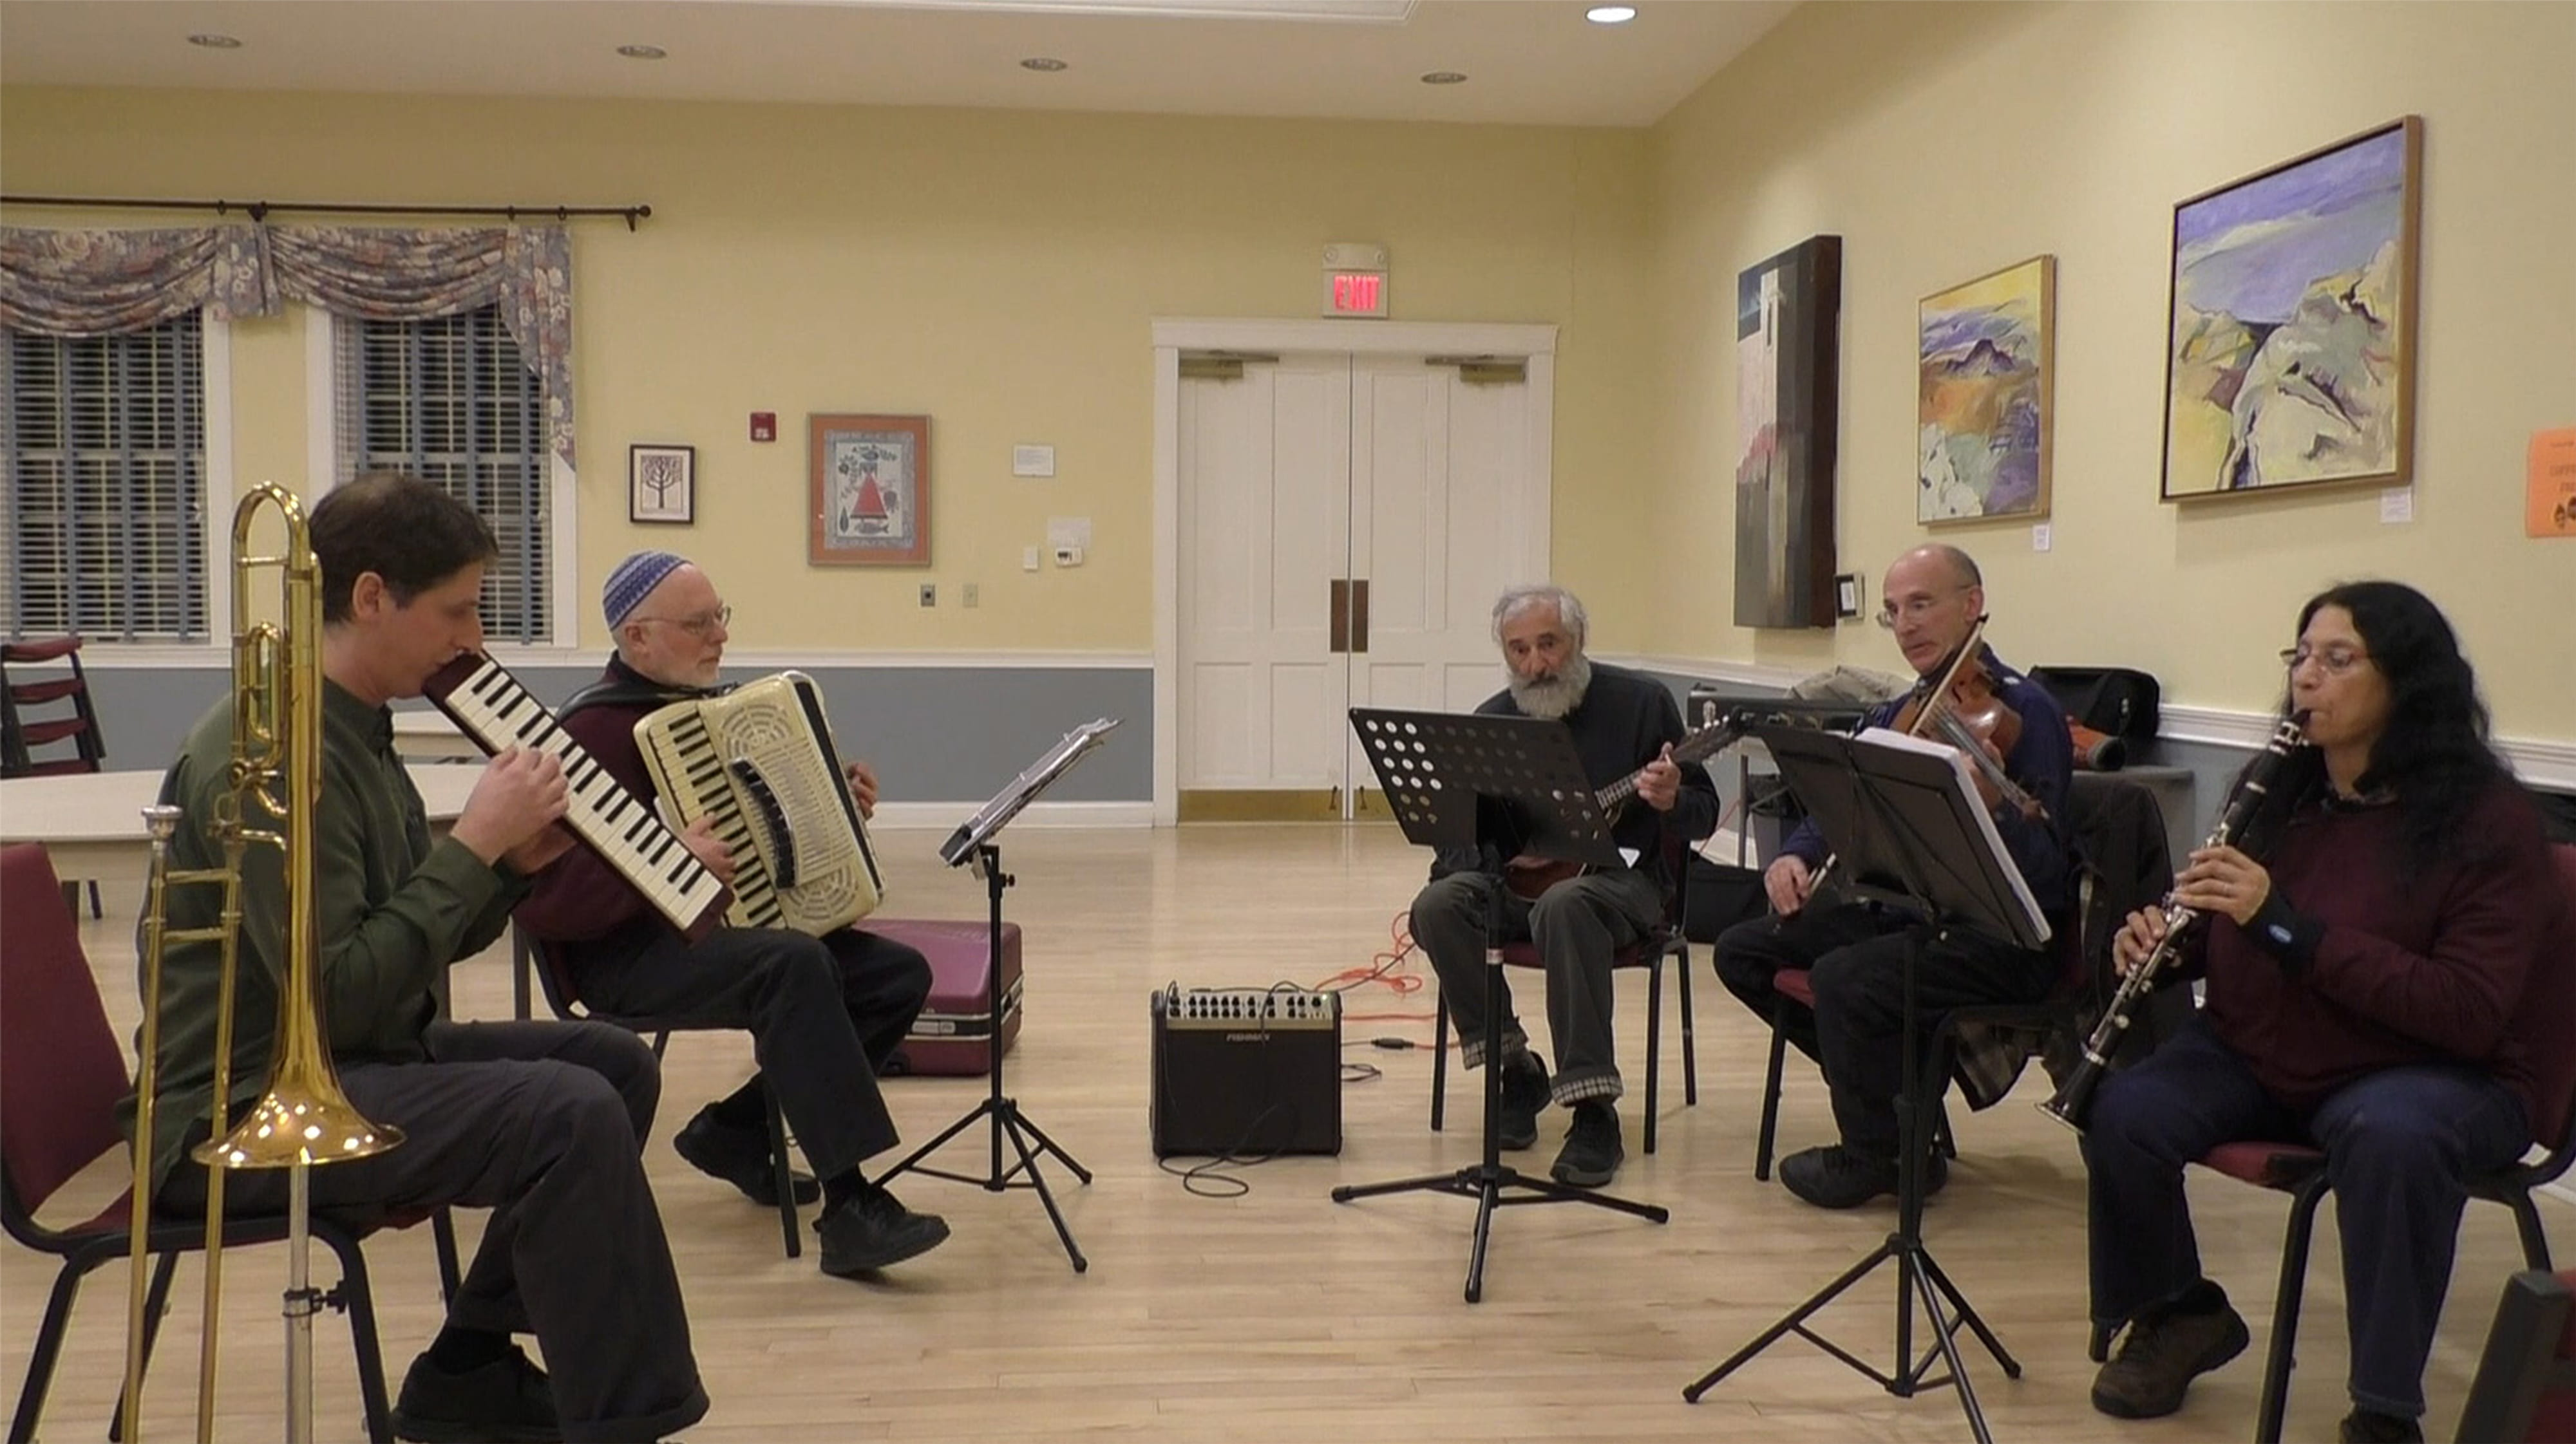 Klezmer band practicing at Amherst JCA